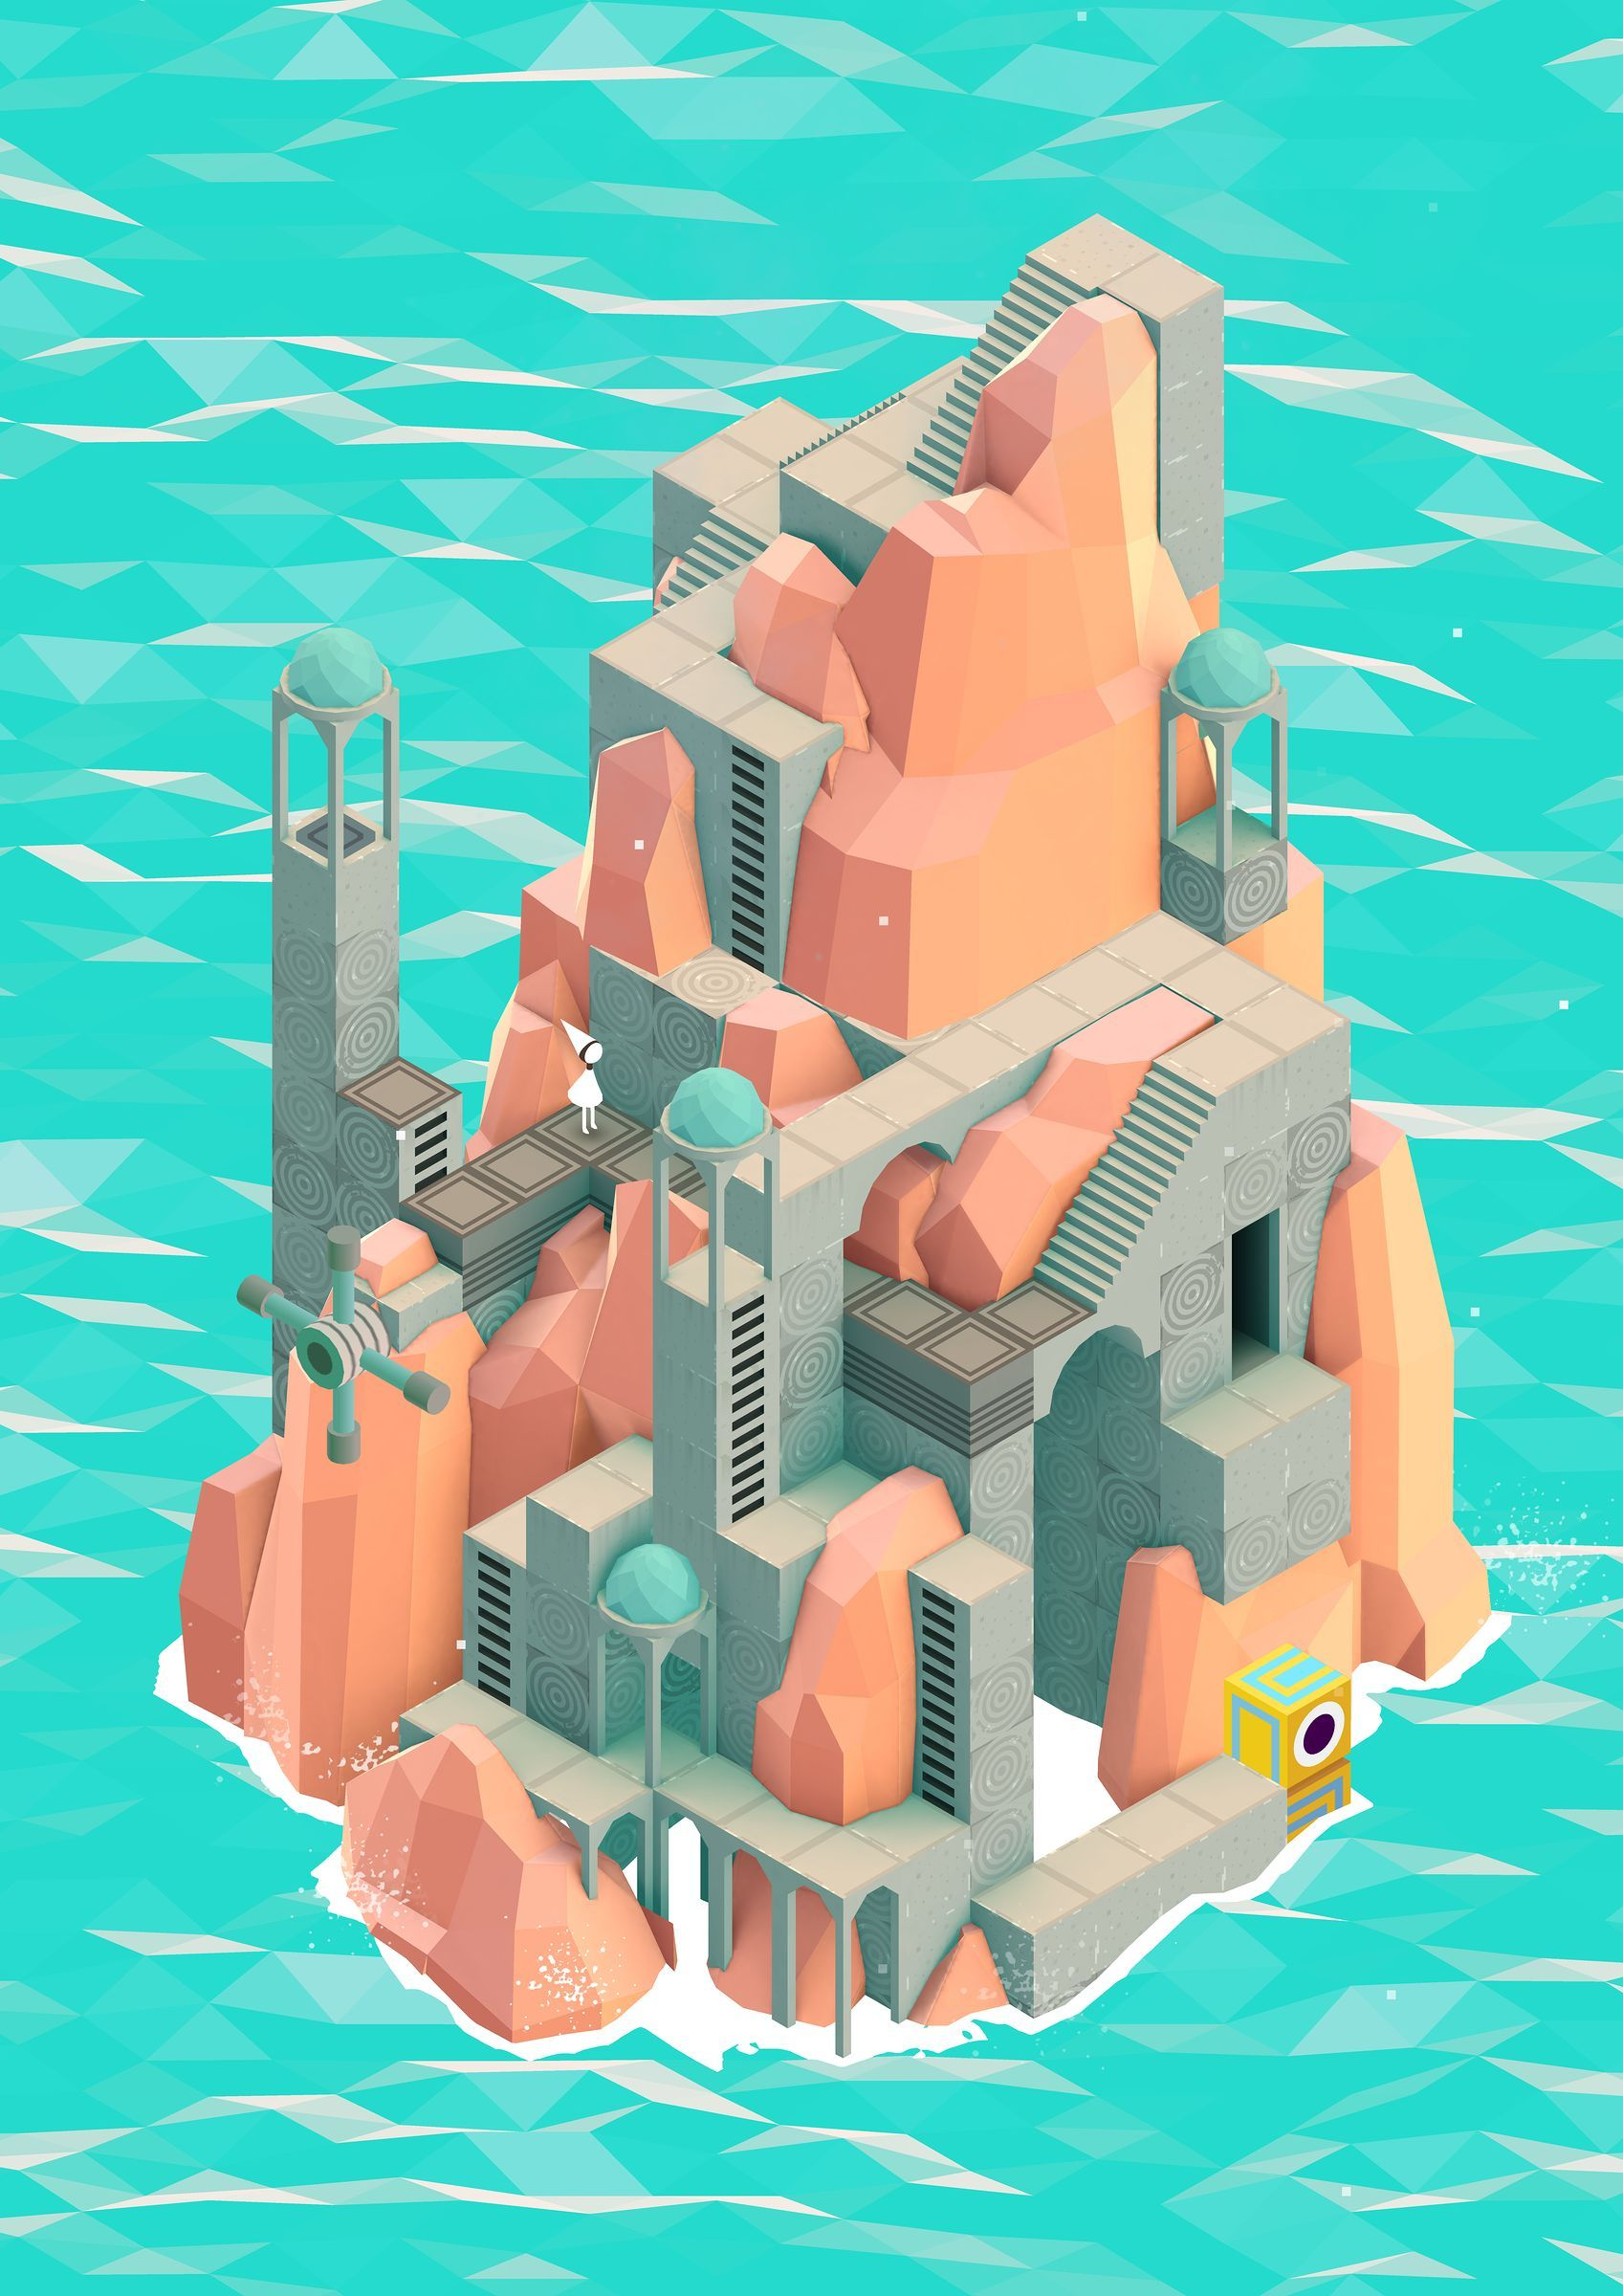 Monument Valley | Beautiful Interface Design Phone Game ...